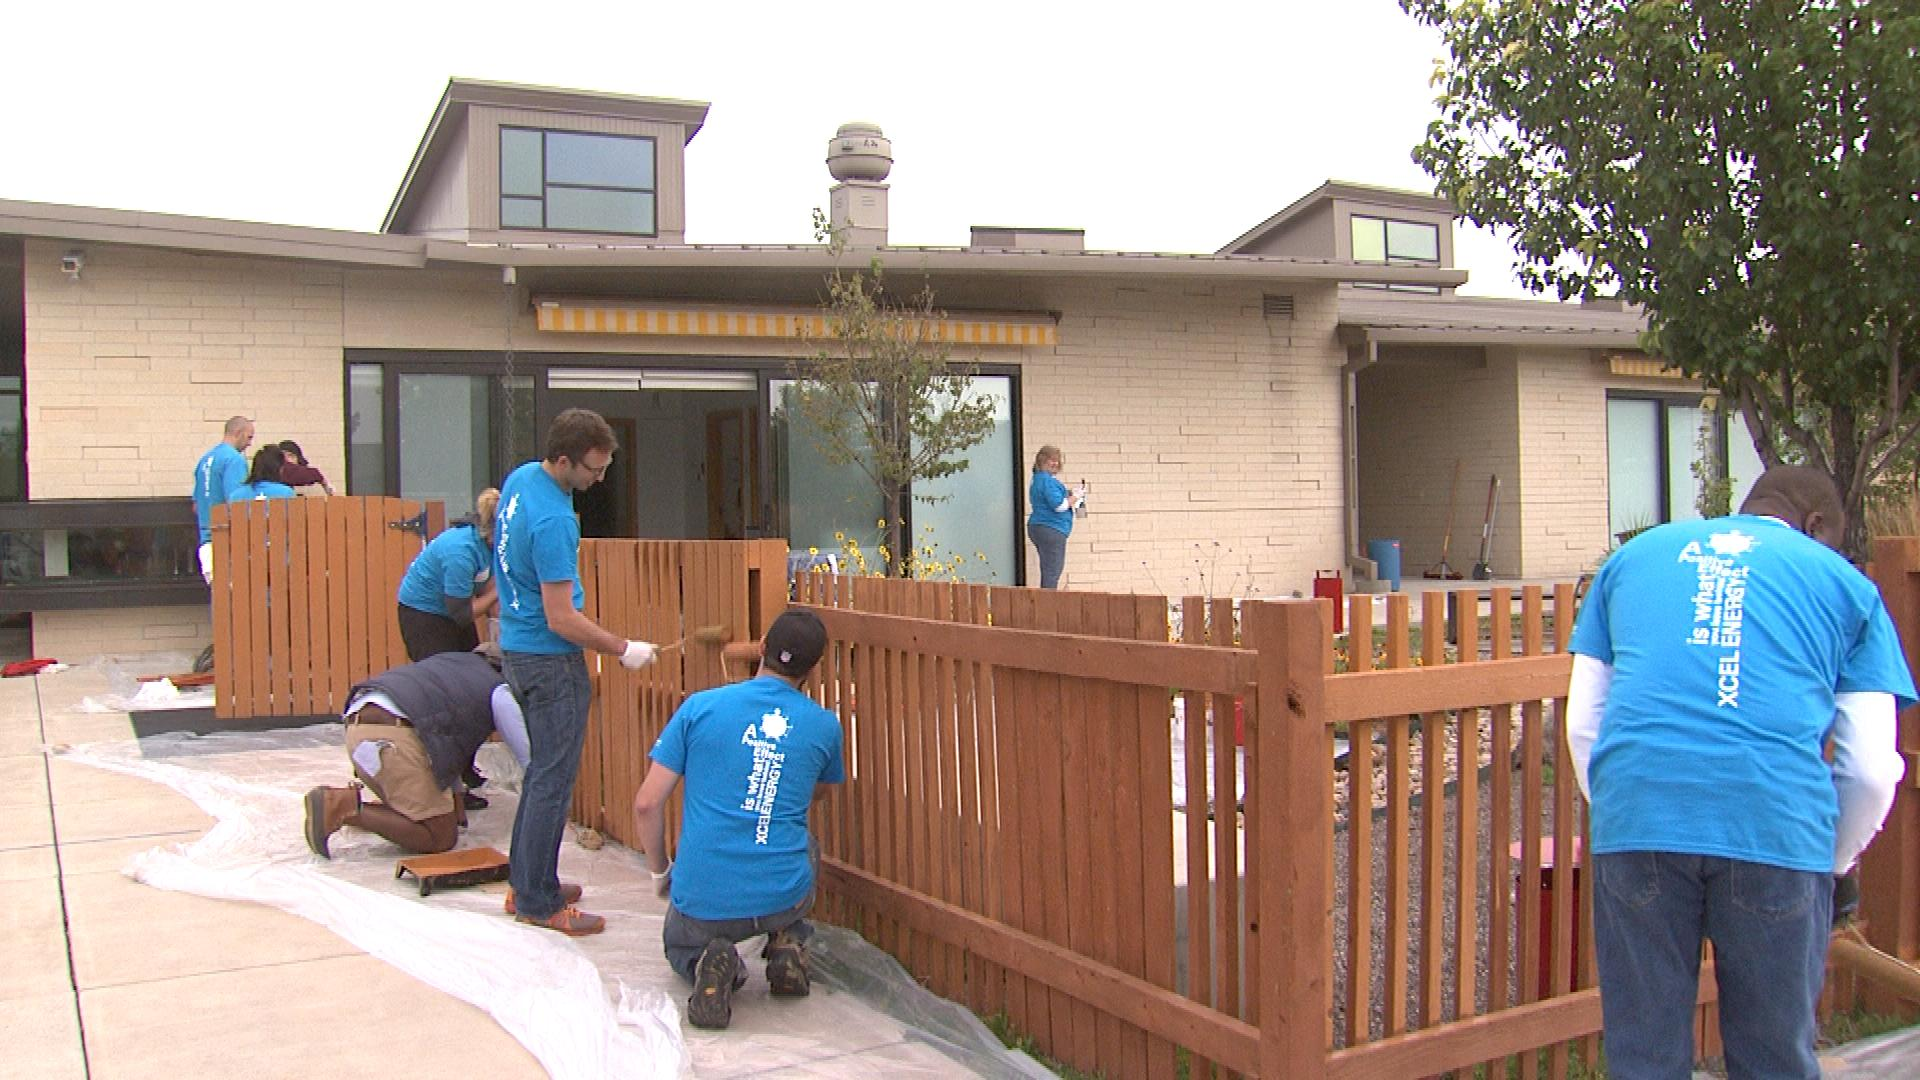 Volunteers paint a fence at the Anchor School for Blind Children (credit: CBS)